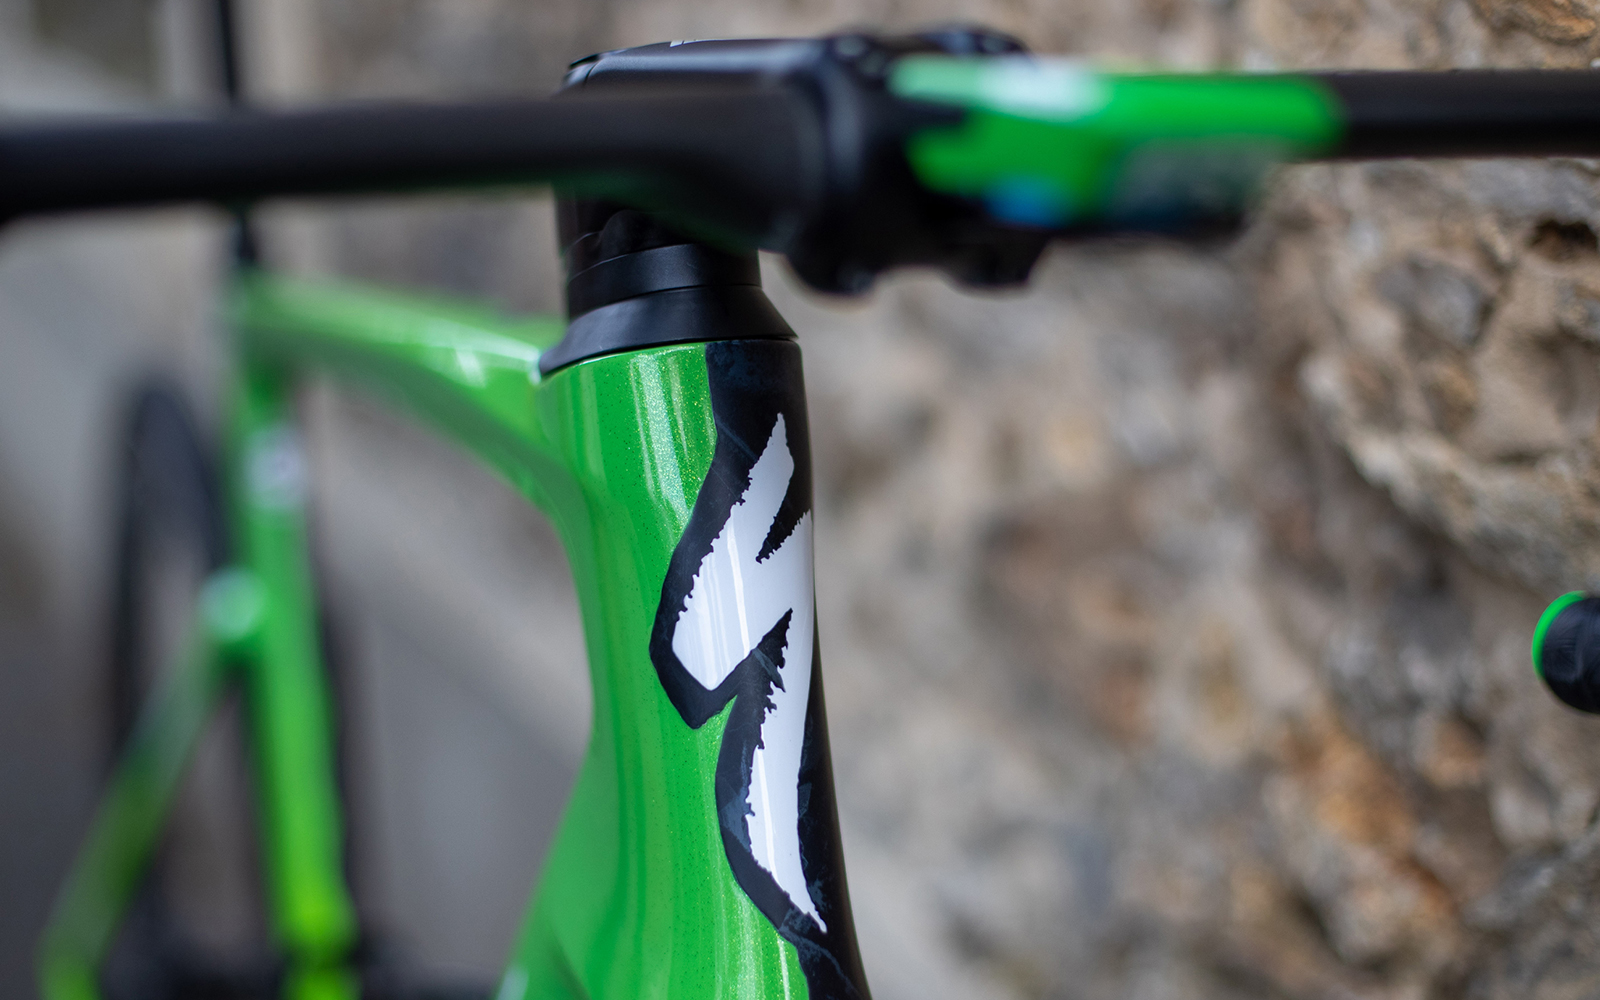 Tour de France tech: The new bikes, tech and trends from the